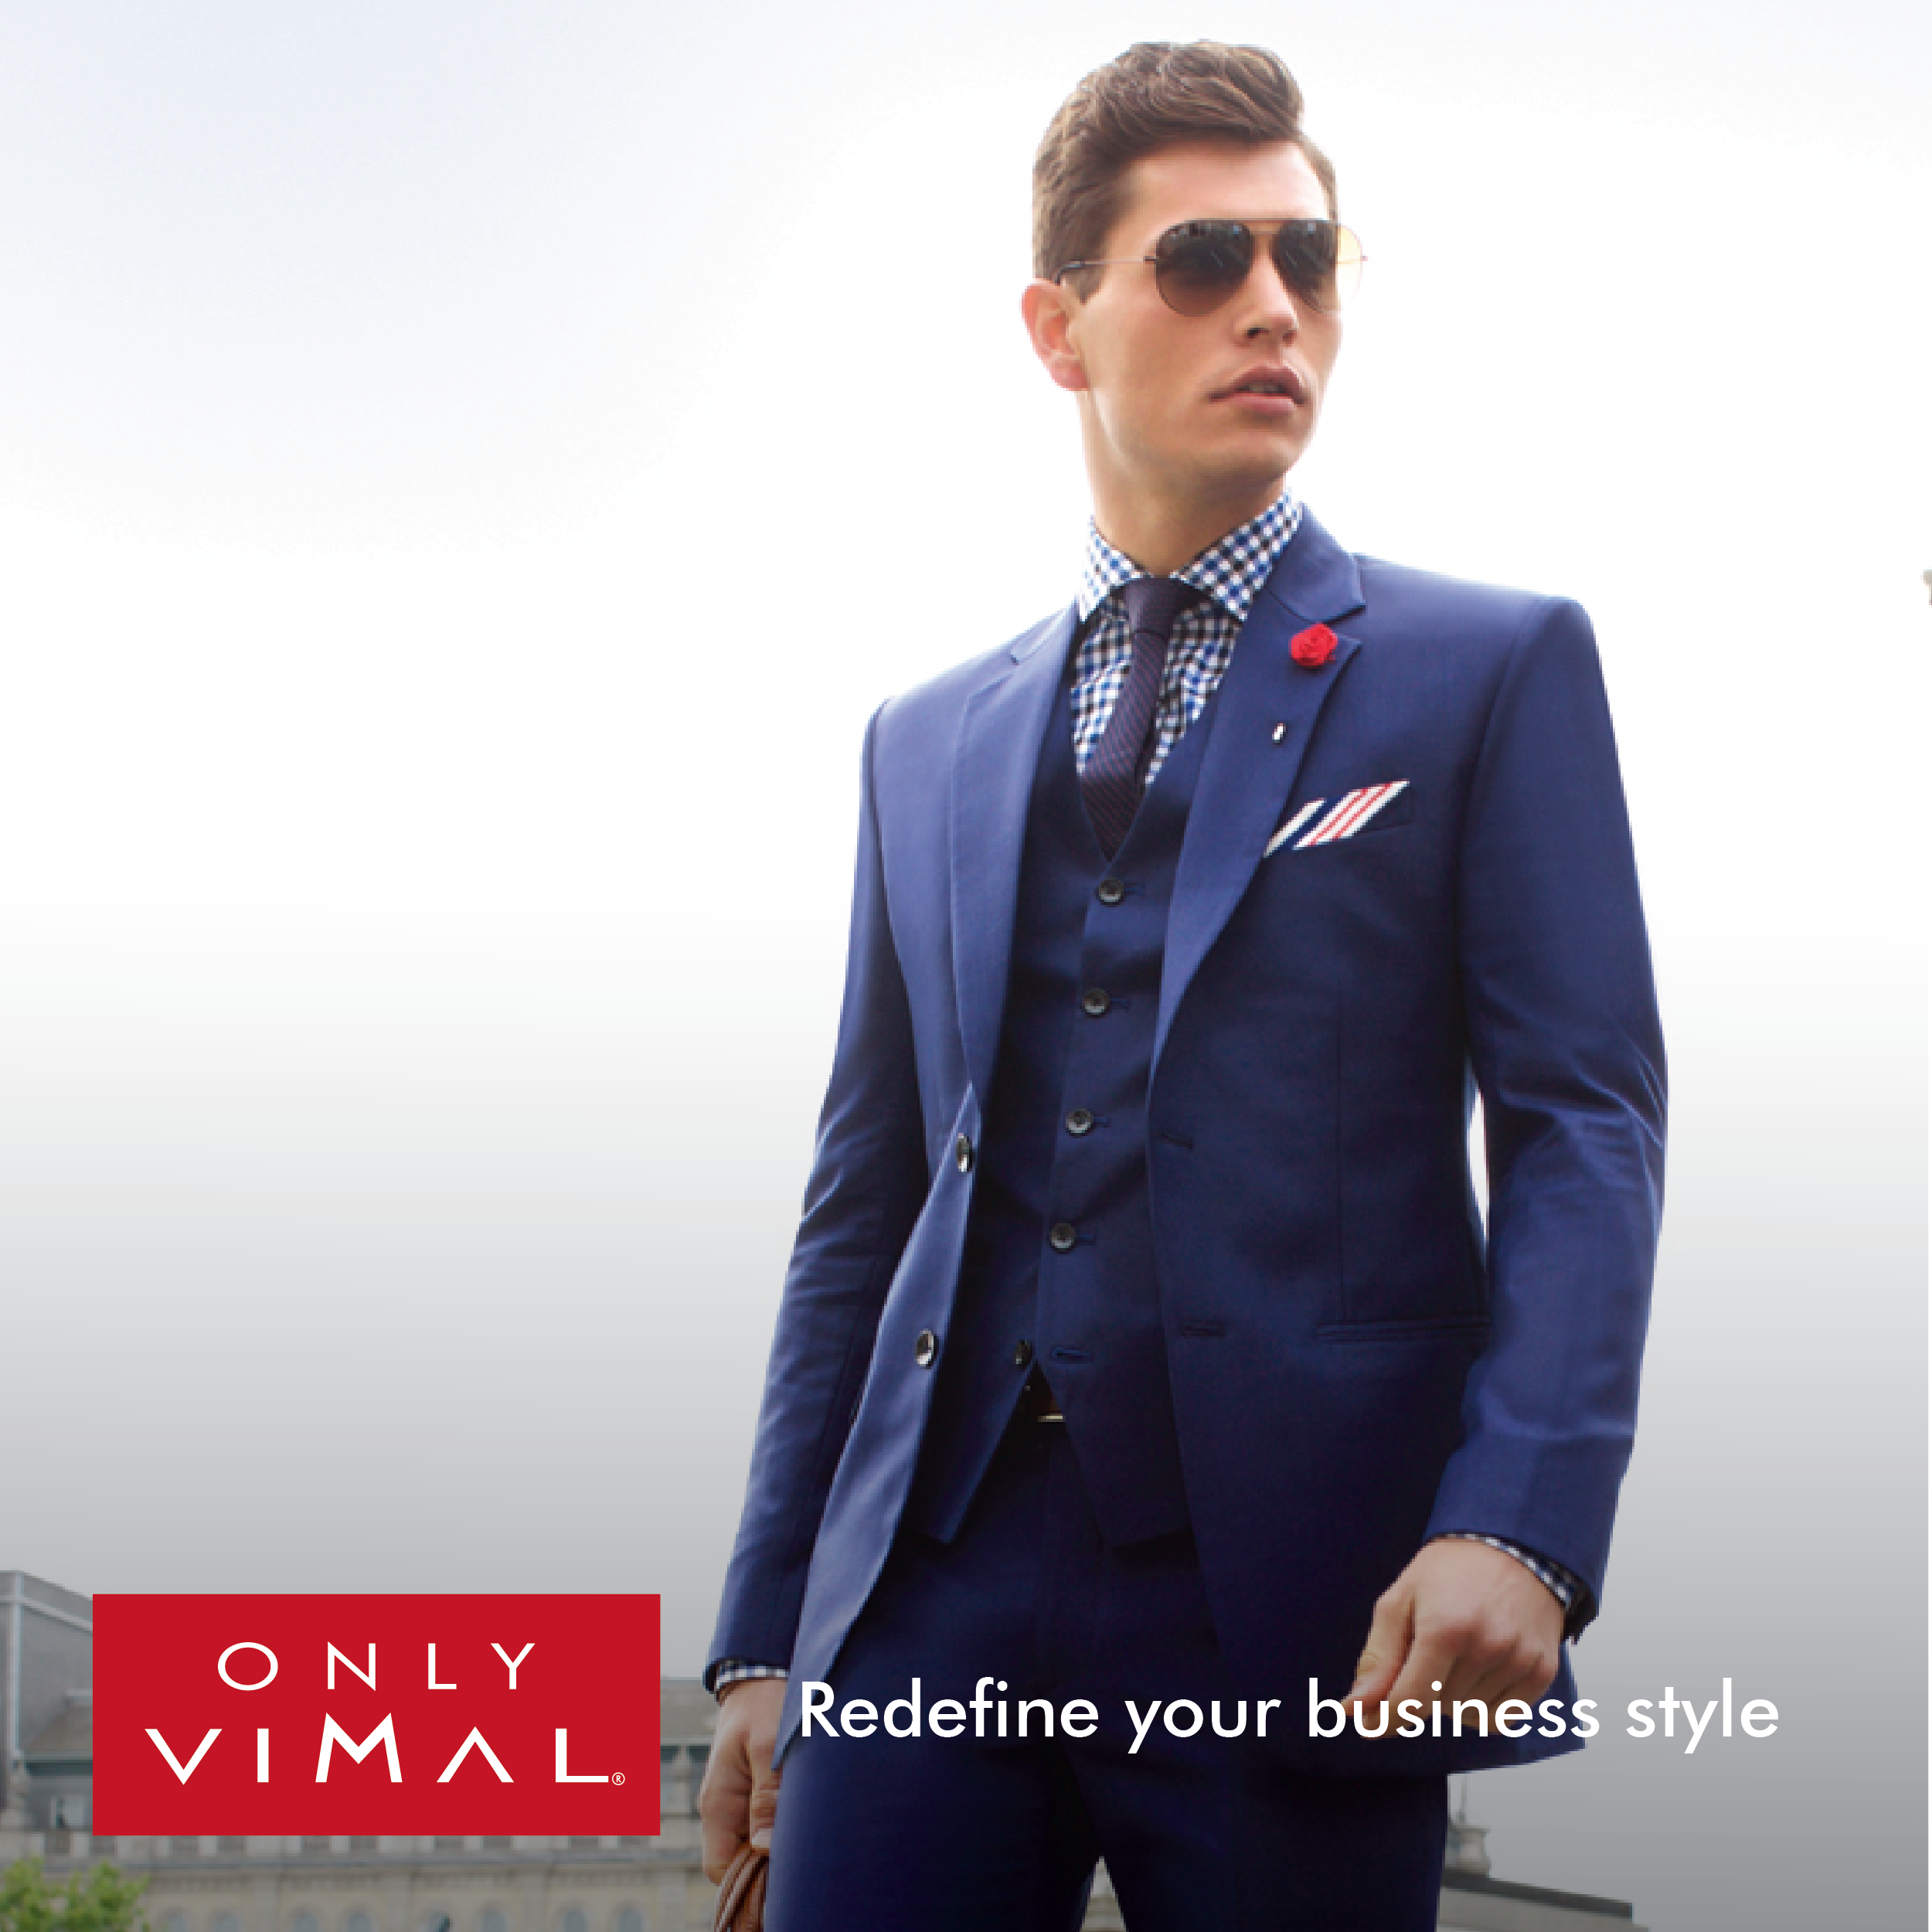 808caf1819 Define & differentiate your business style with rich & classy clothing  solutions from the house of Only Vimal. #FashionForMen #Menswear #Apparel  ...